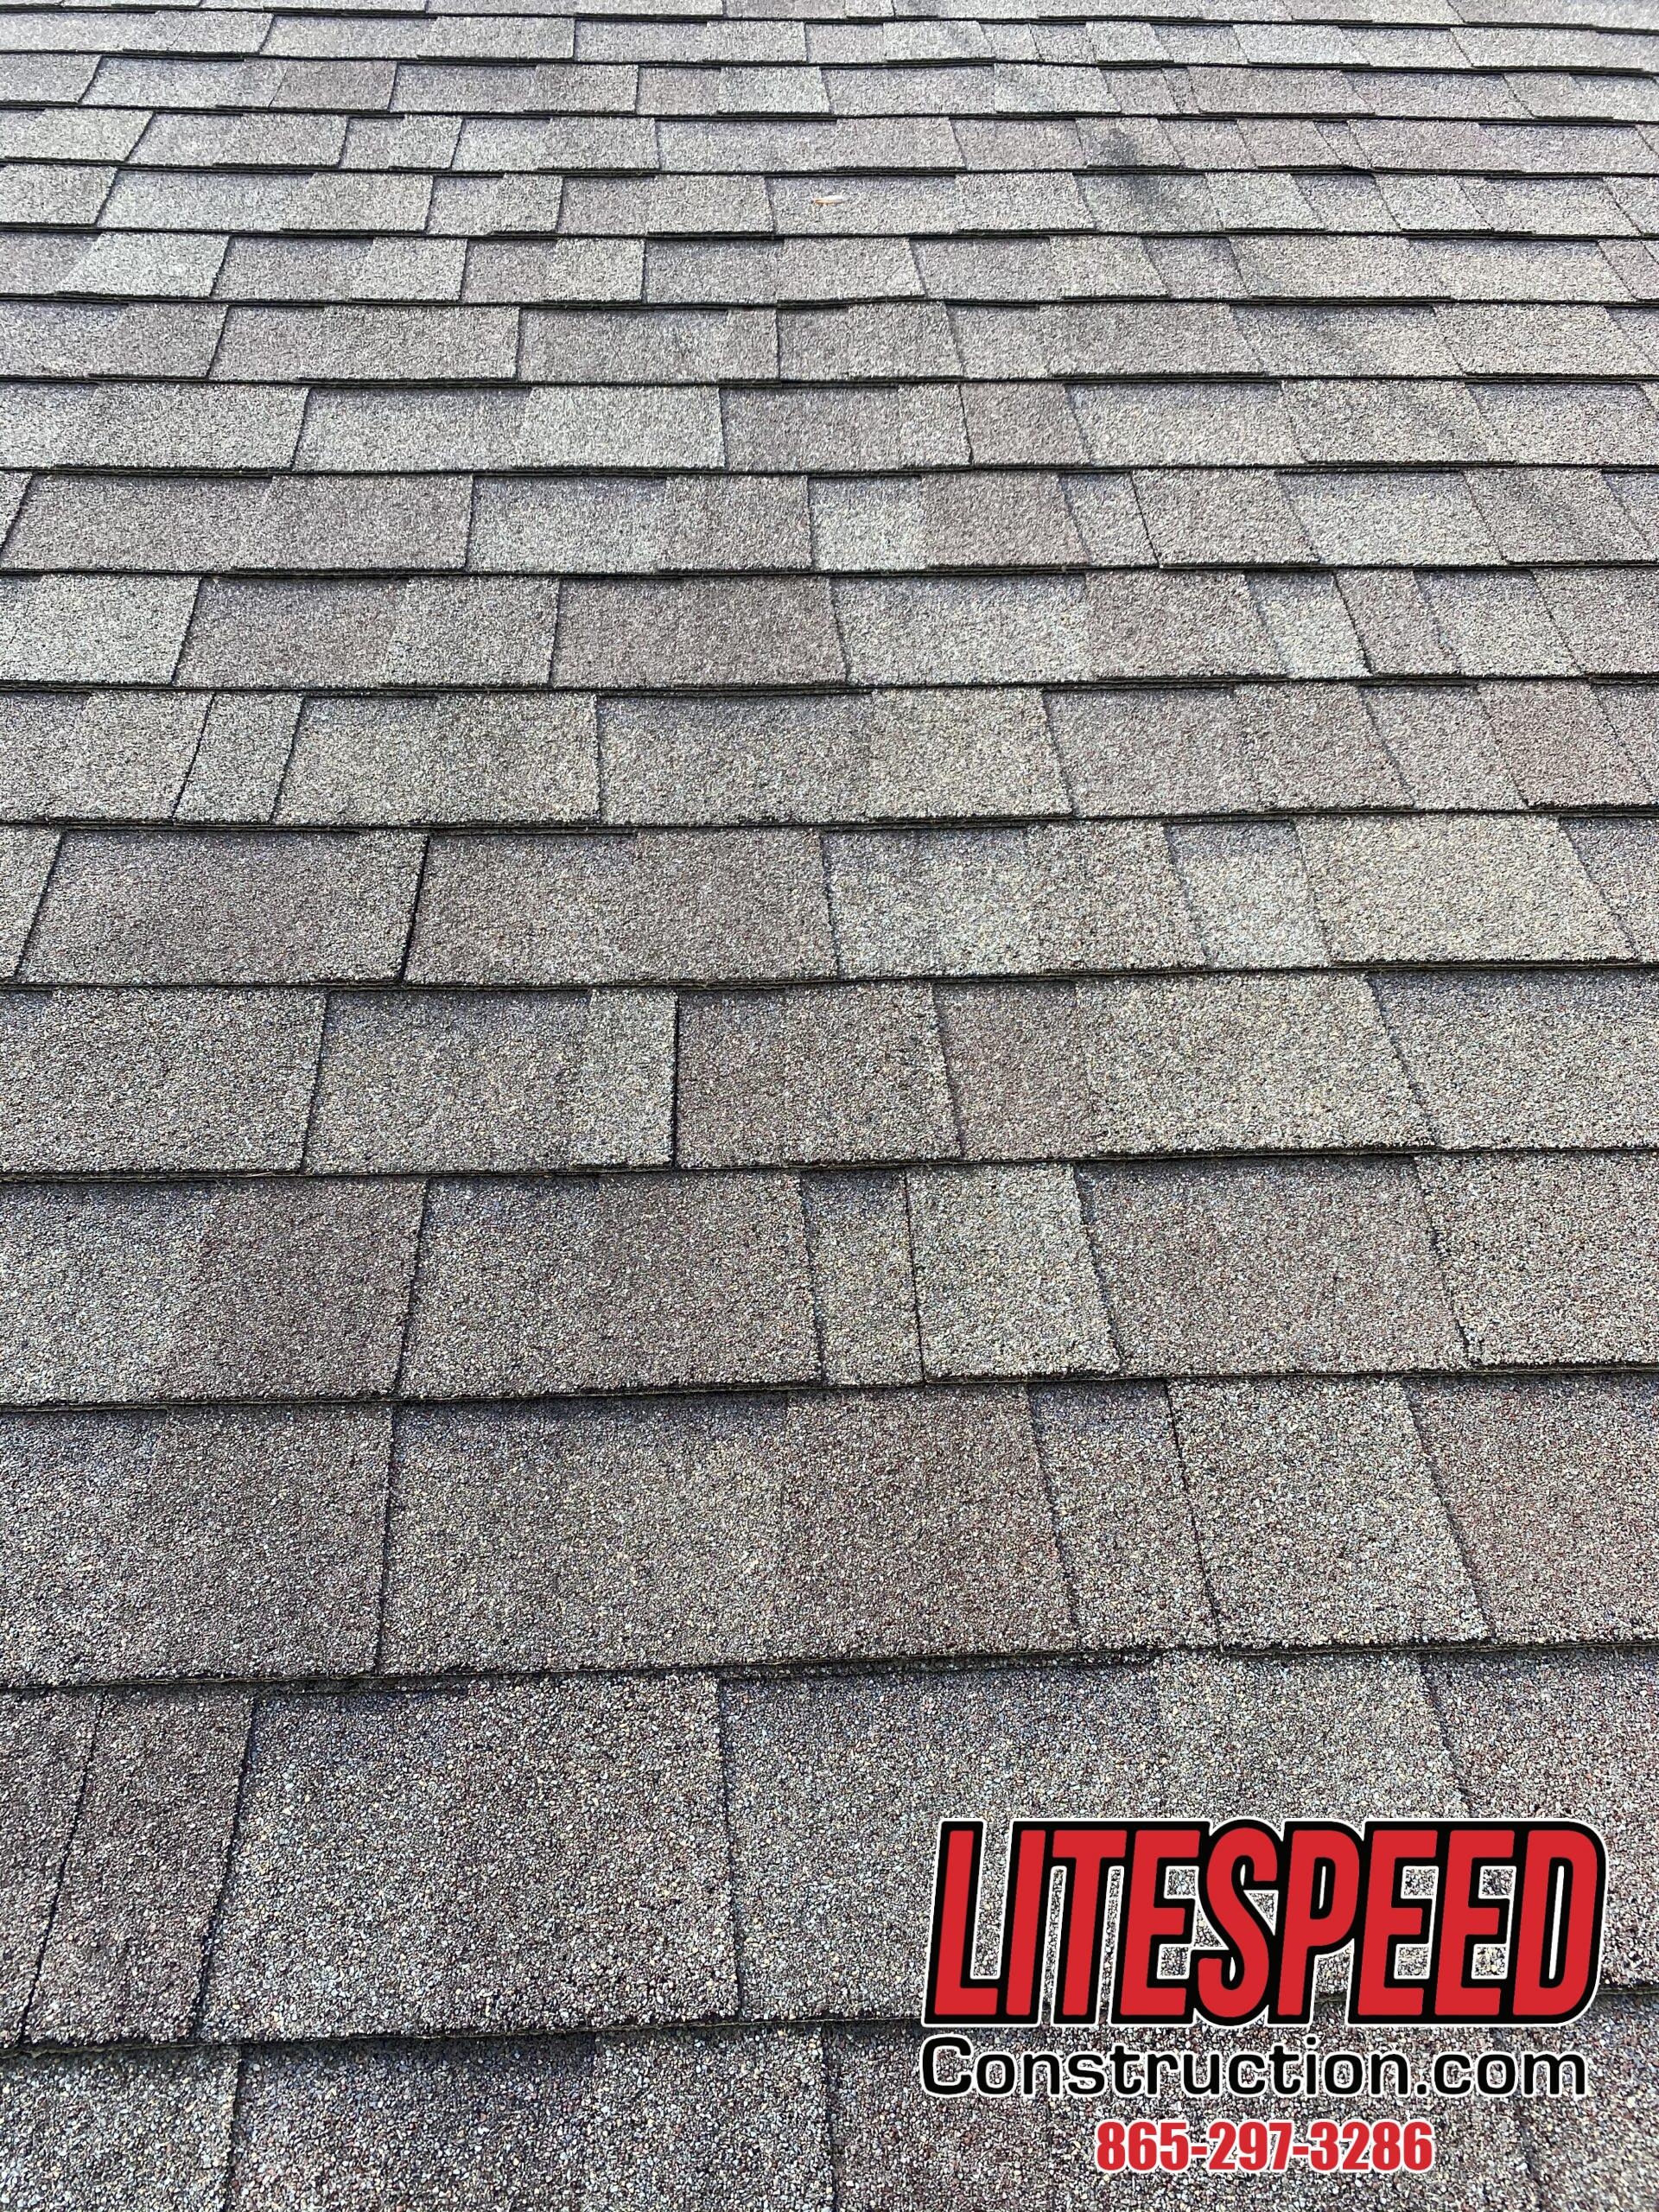 This is a picture of grayish brown shingles that are staggered correctly